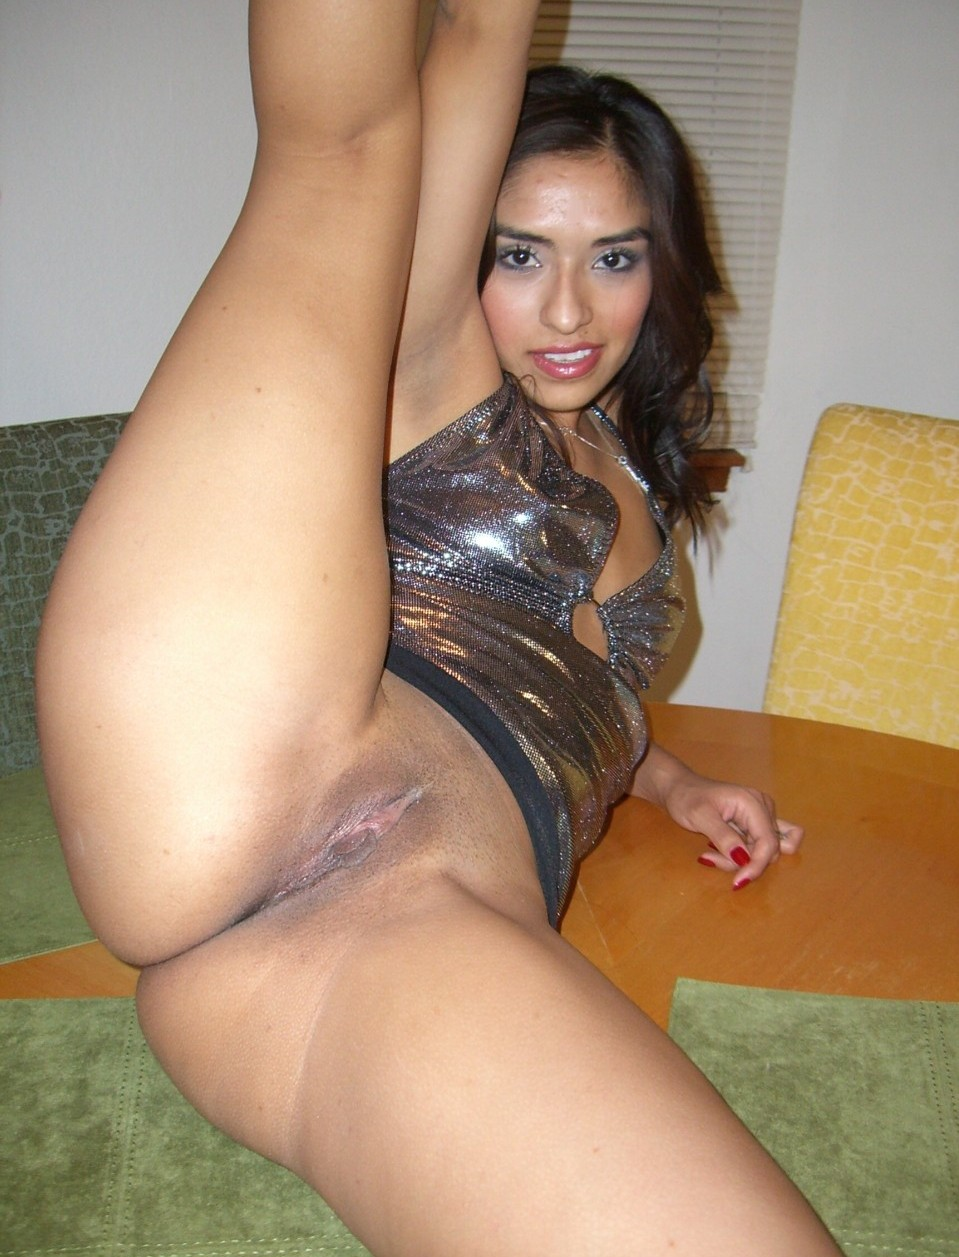 Hot Arab Women Nude